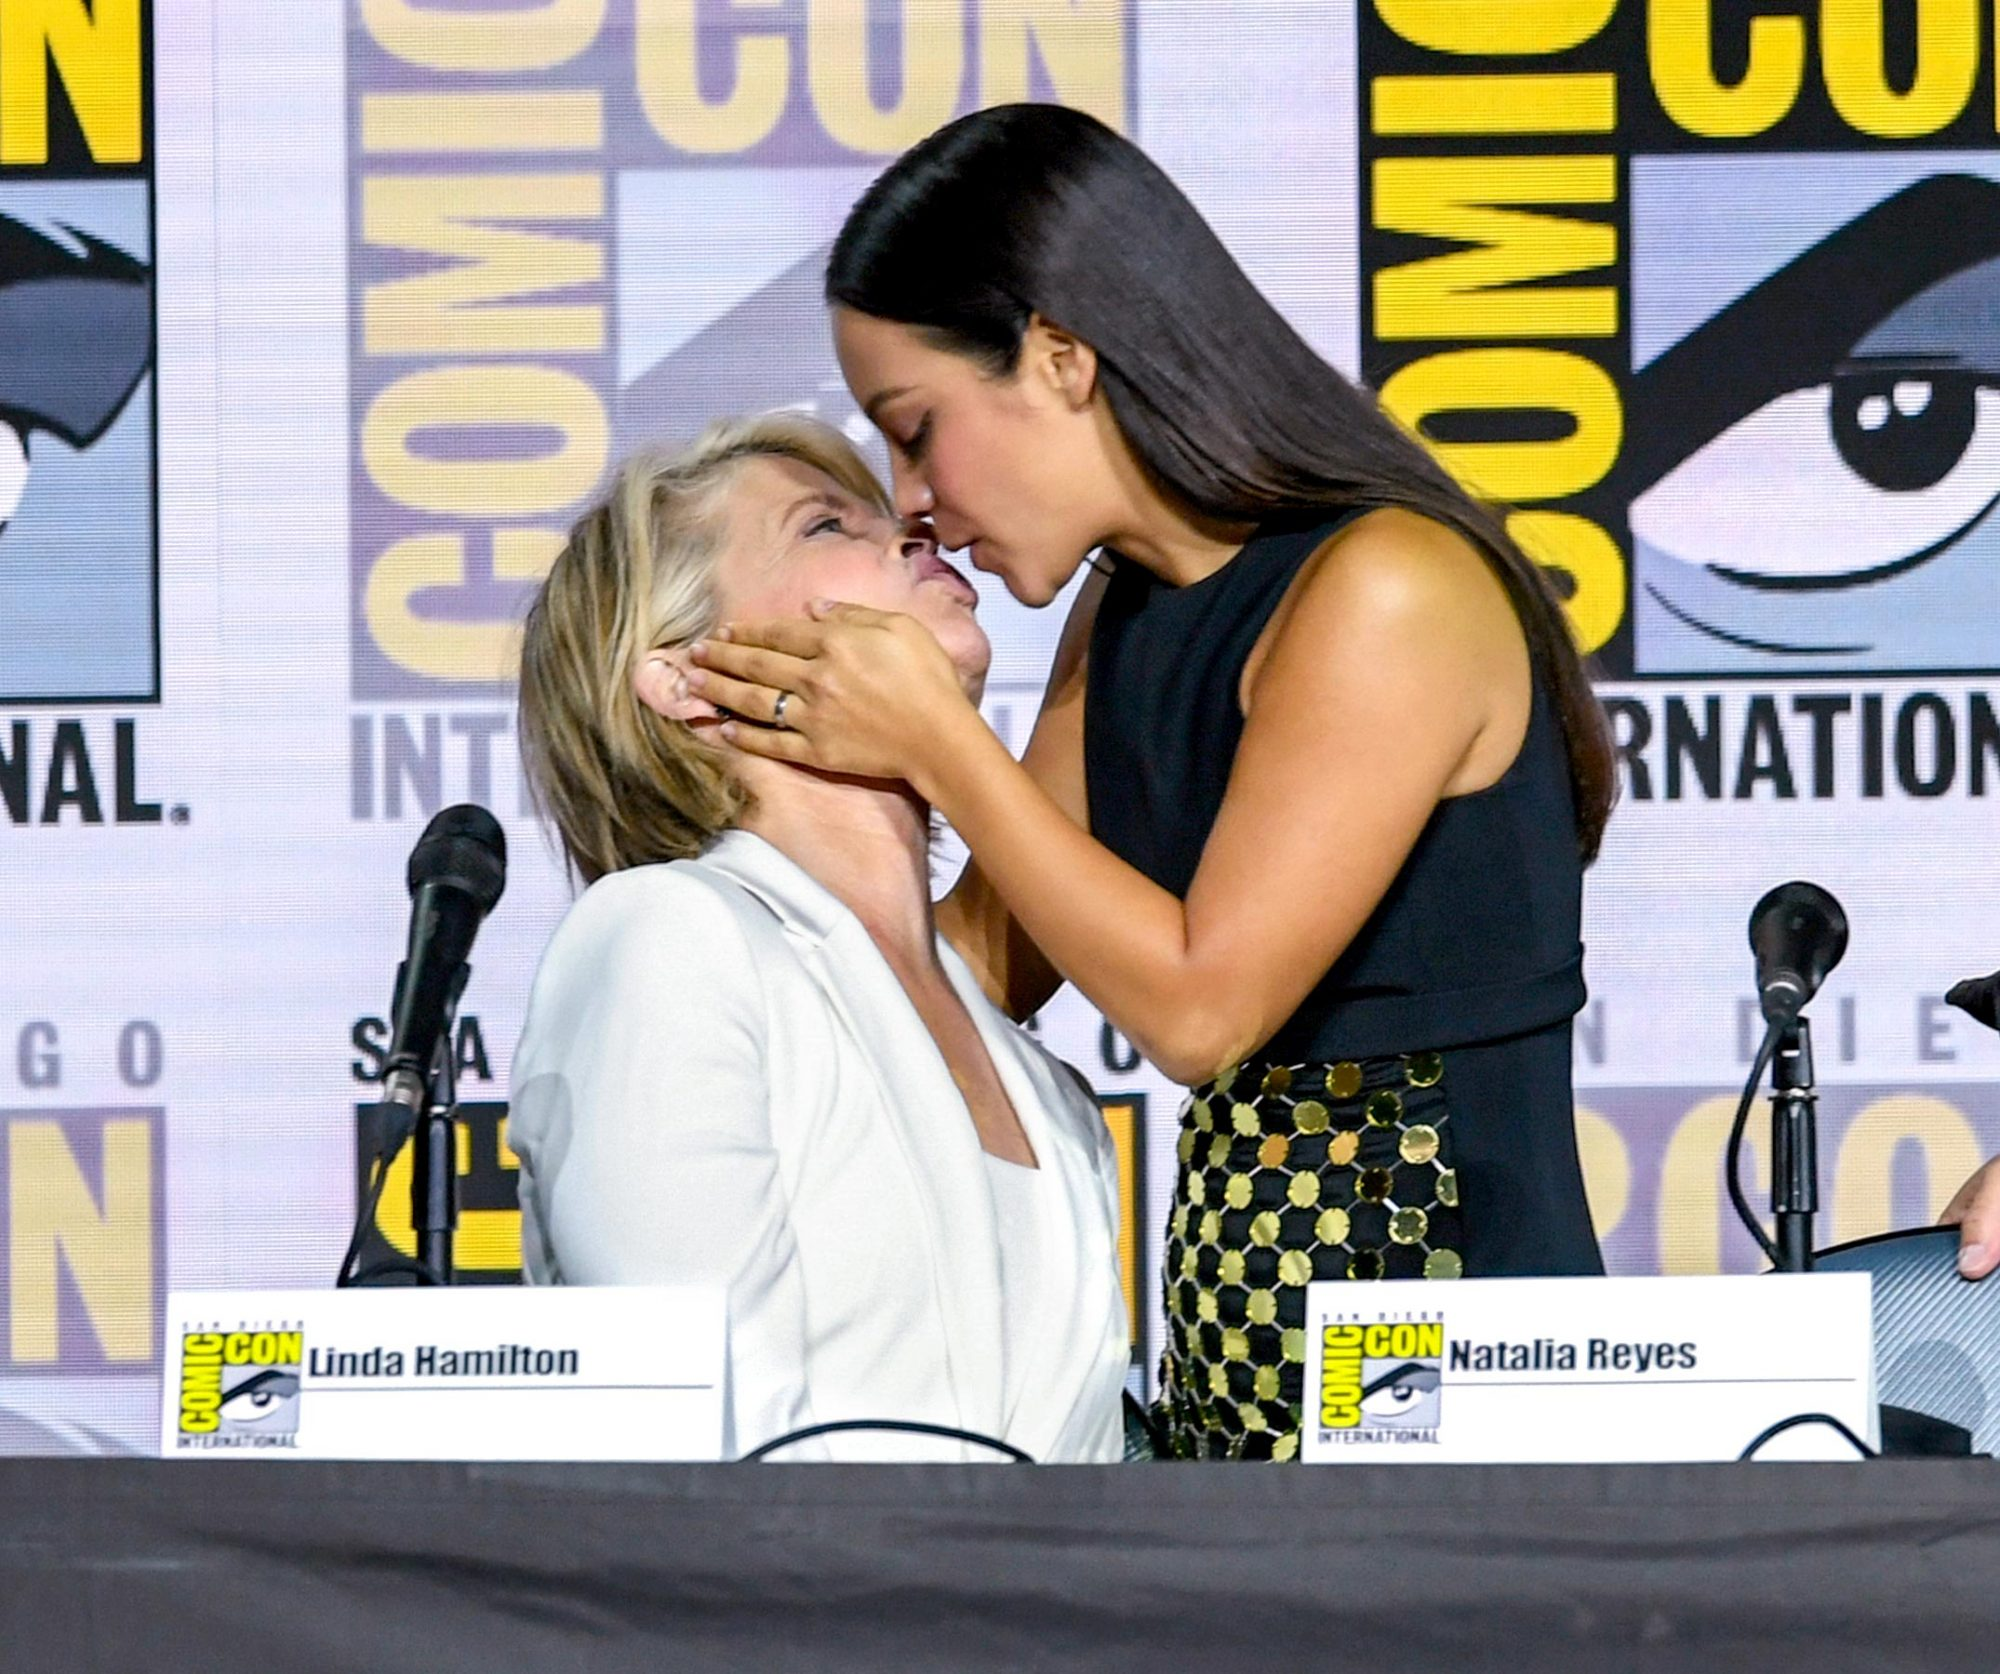 """SAN DIEGO, CALIFORNIA - JULY 18: Linda Hamilton and Natalia Reyes speak at the """"Terminator: Dark Fate"""" panel during 2019 Comic-Con International at San Diego Convention Center on July 18, 2019 in San Diego, California. (Photo by Kevin Winter/Getty Images)"""